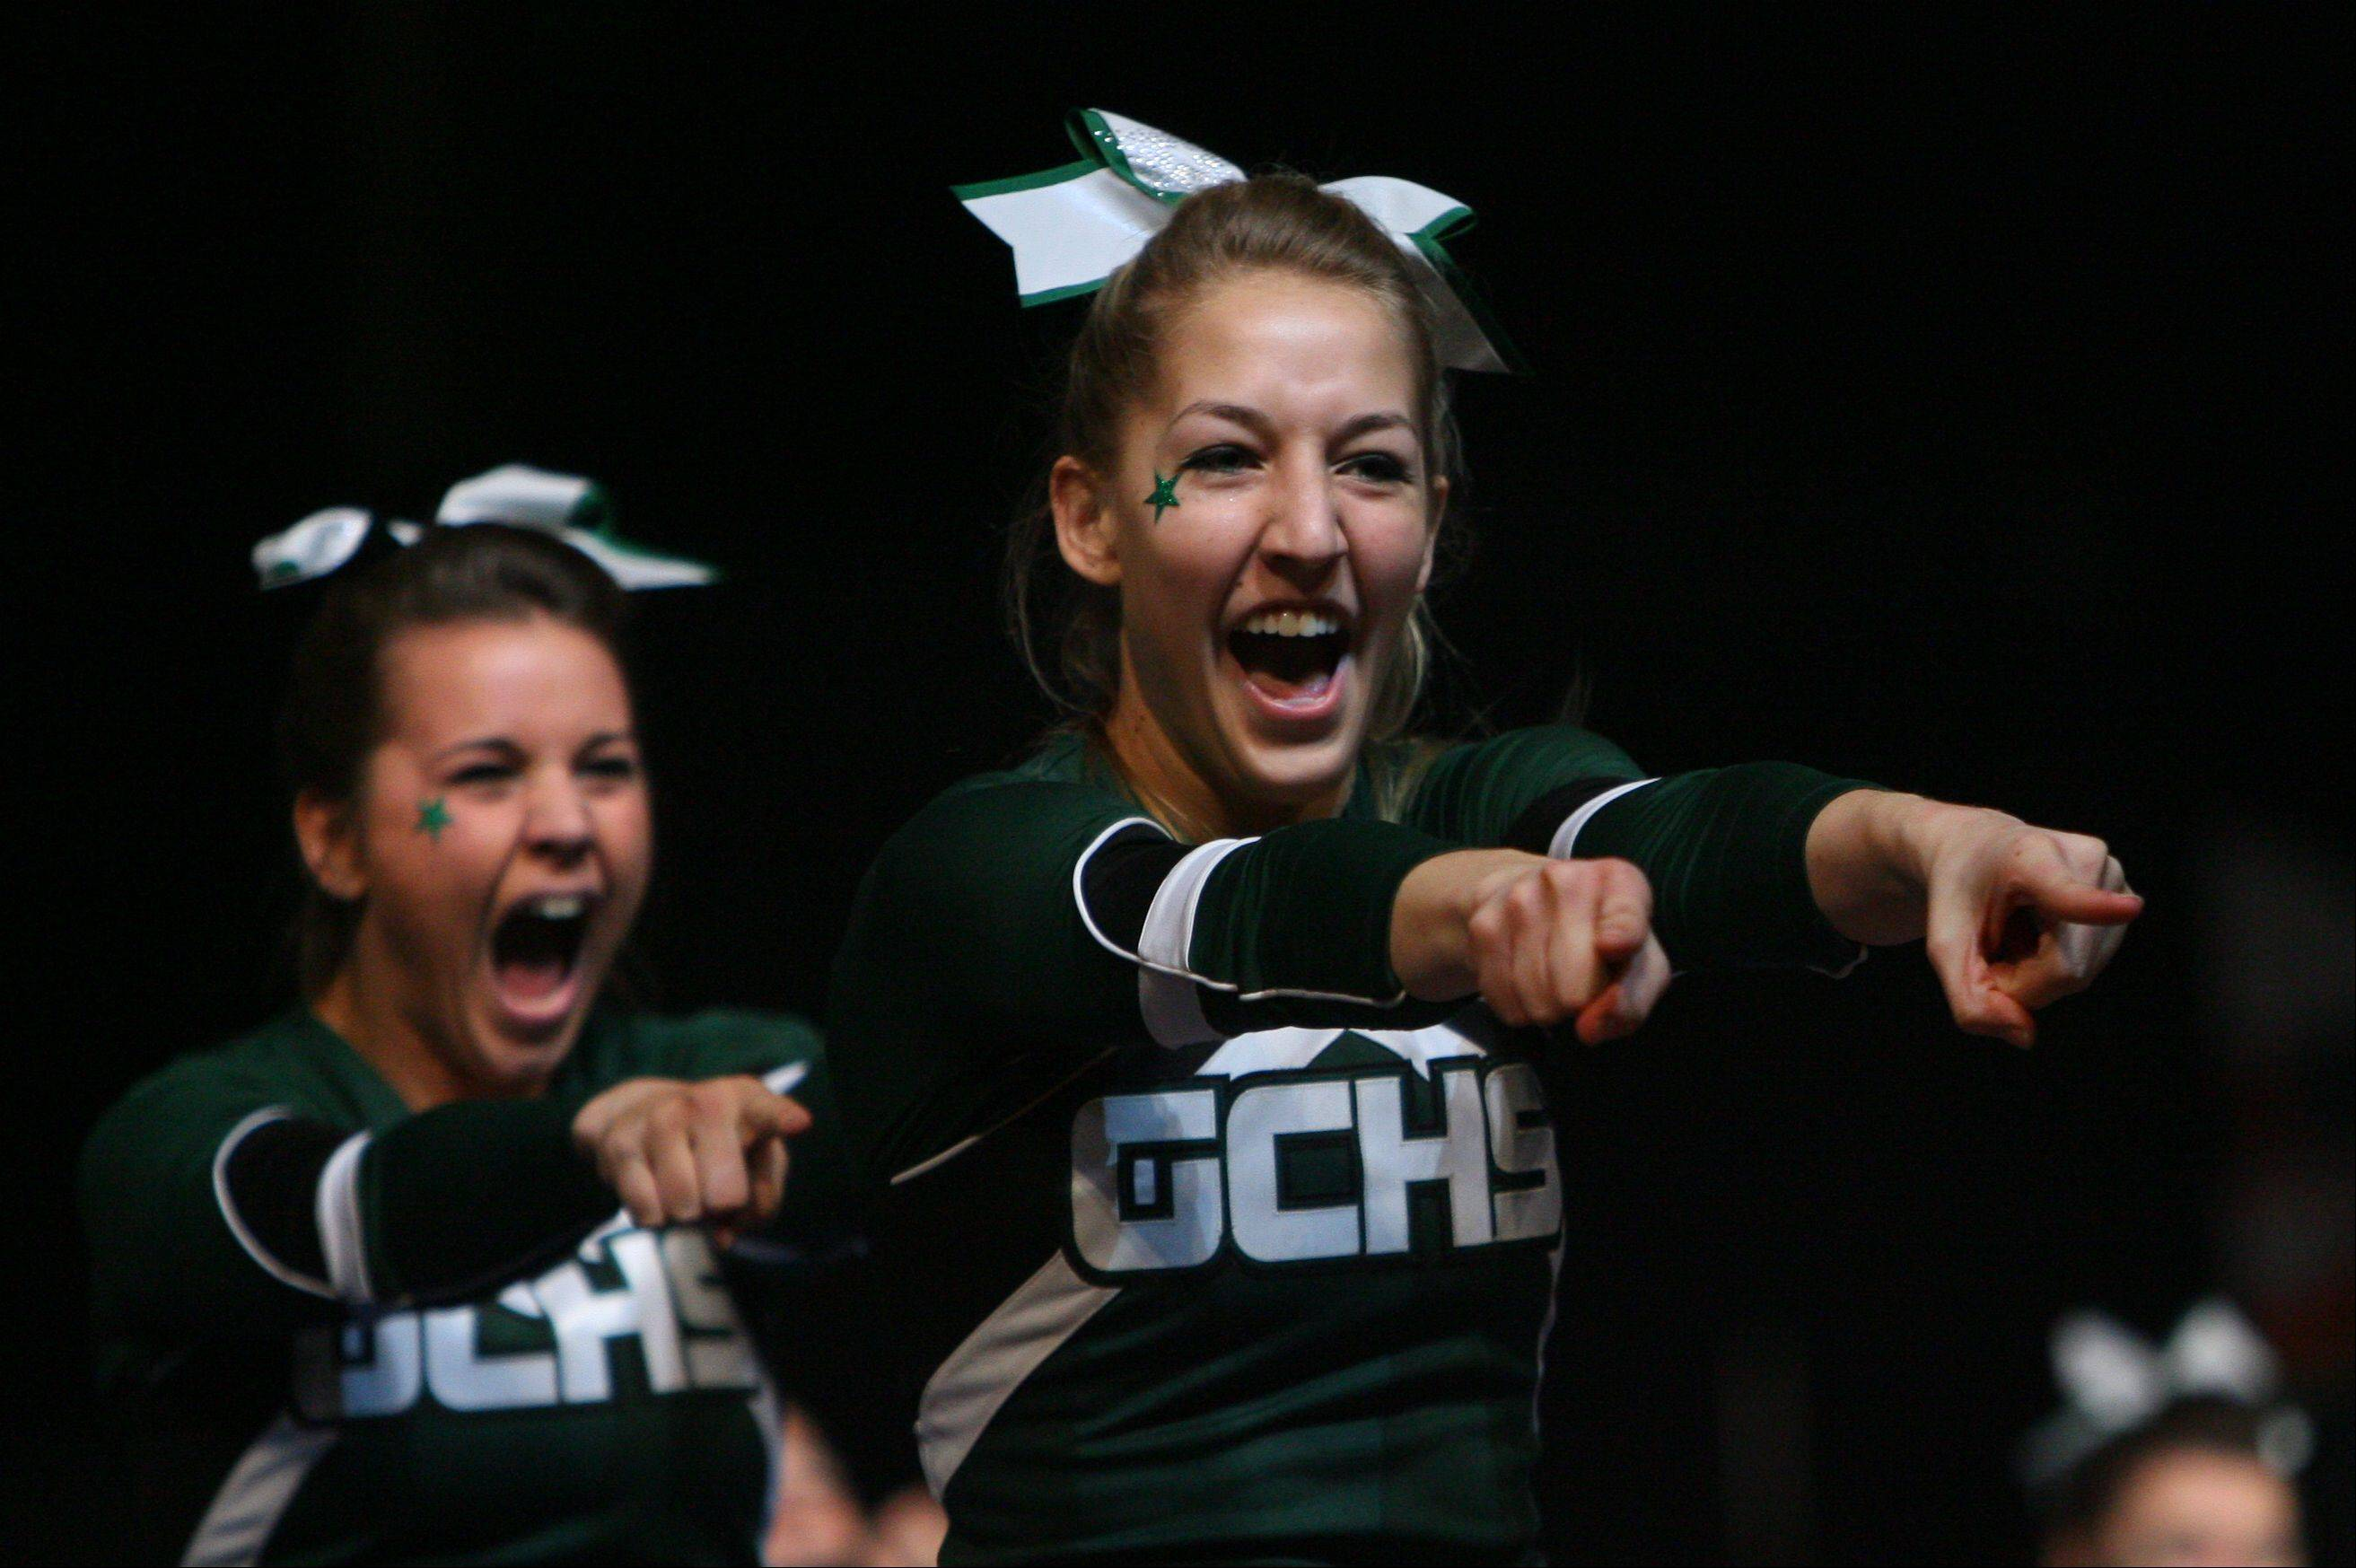 Grayslake Central High School participates in the IHSA Competitive Cheerleading finals on Saturday, Feb. 2 at the U.S. Cellular Coliseum in Bloomington.